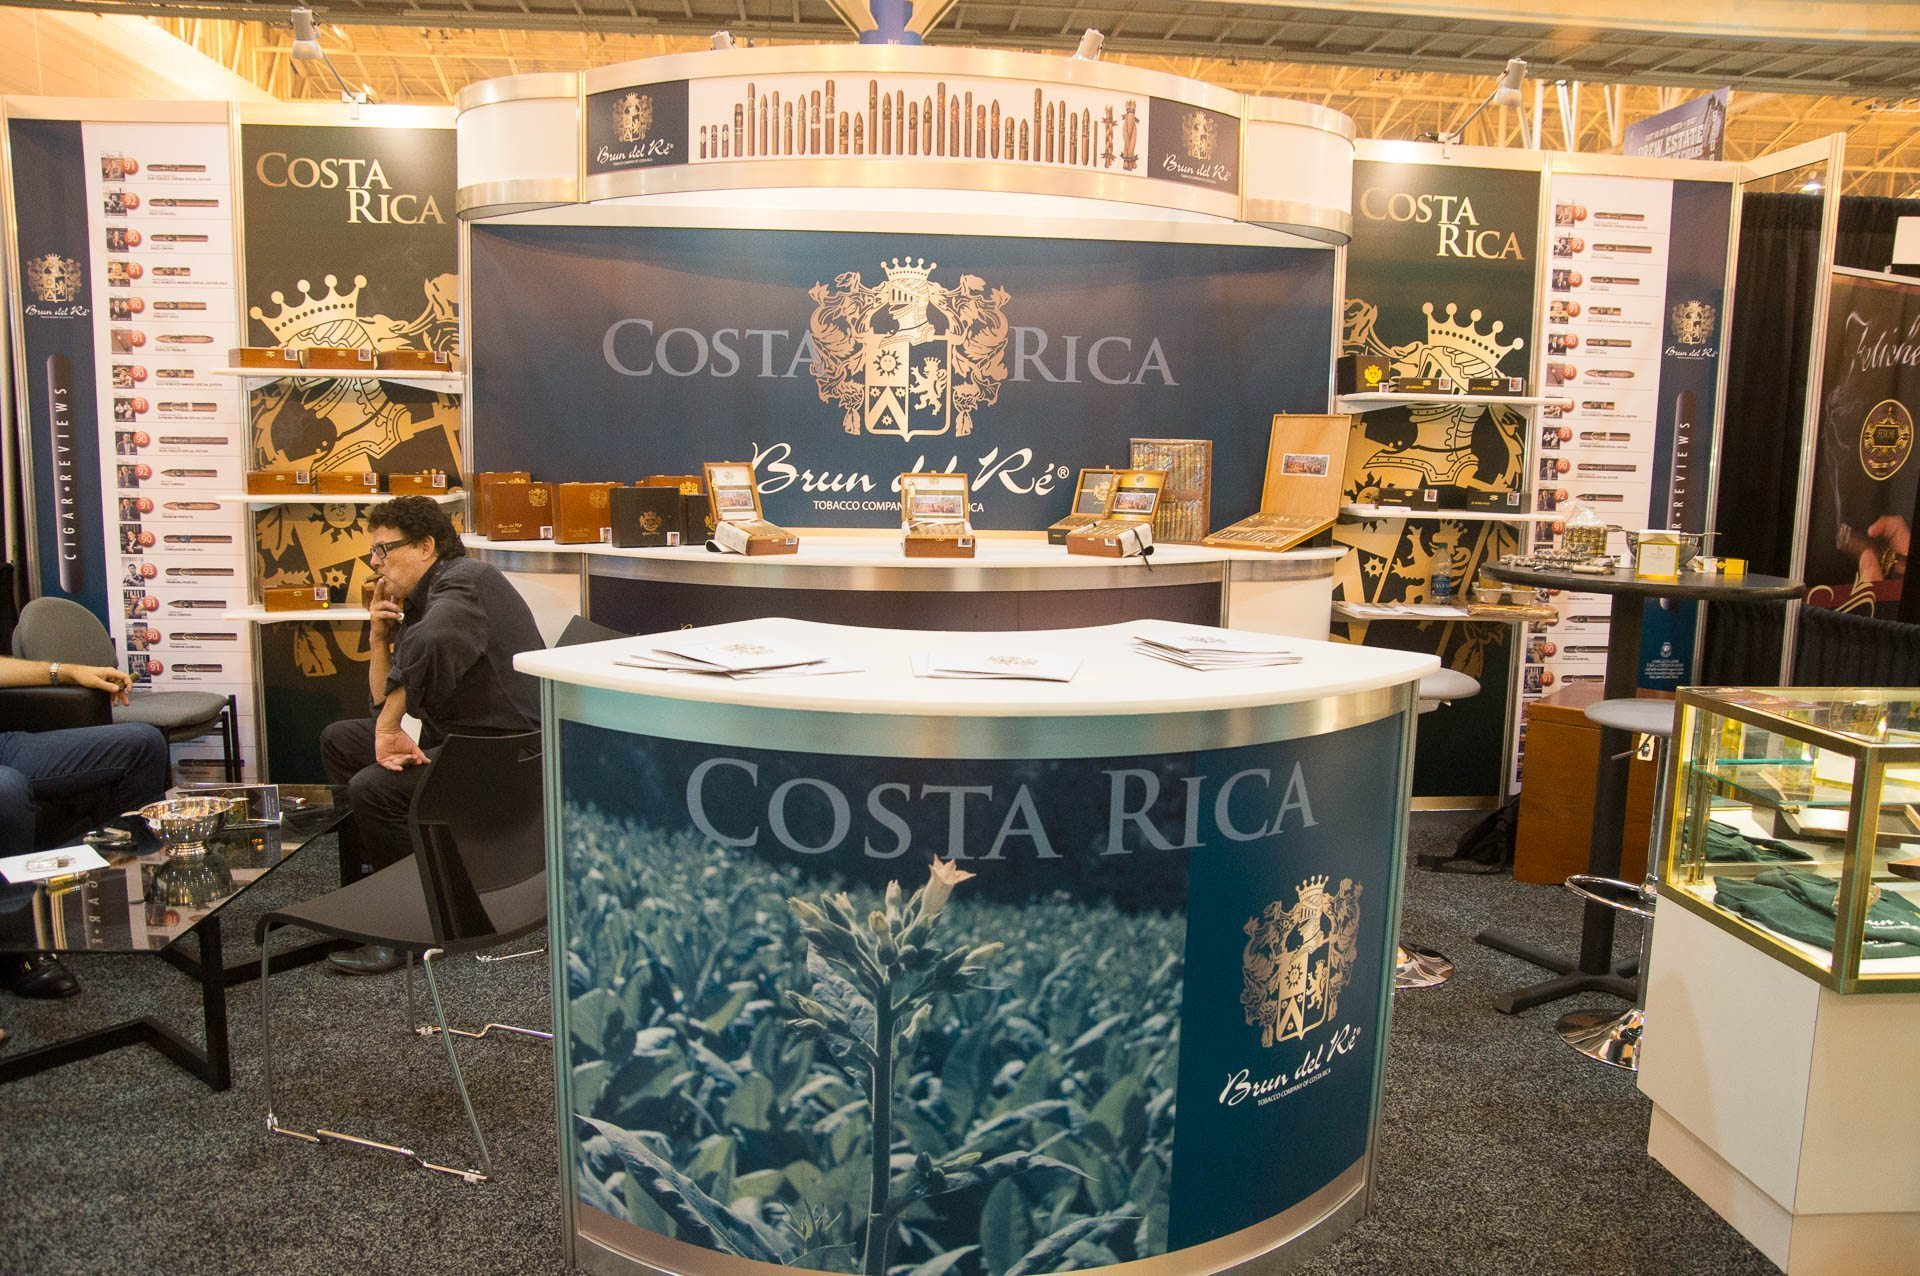 IPCPR: The Show in Pictures 2015 – Brun del Ré